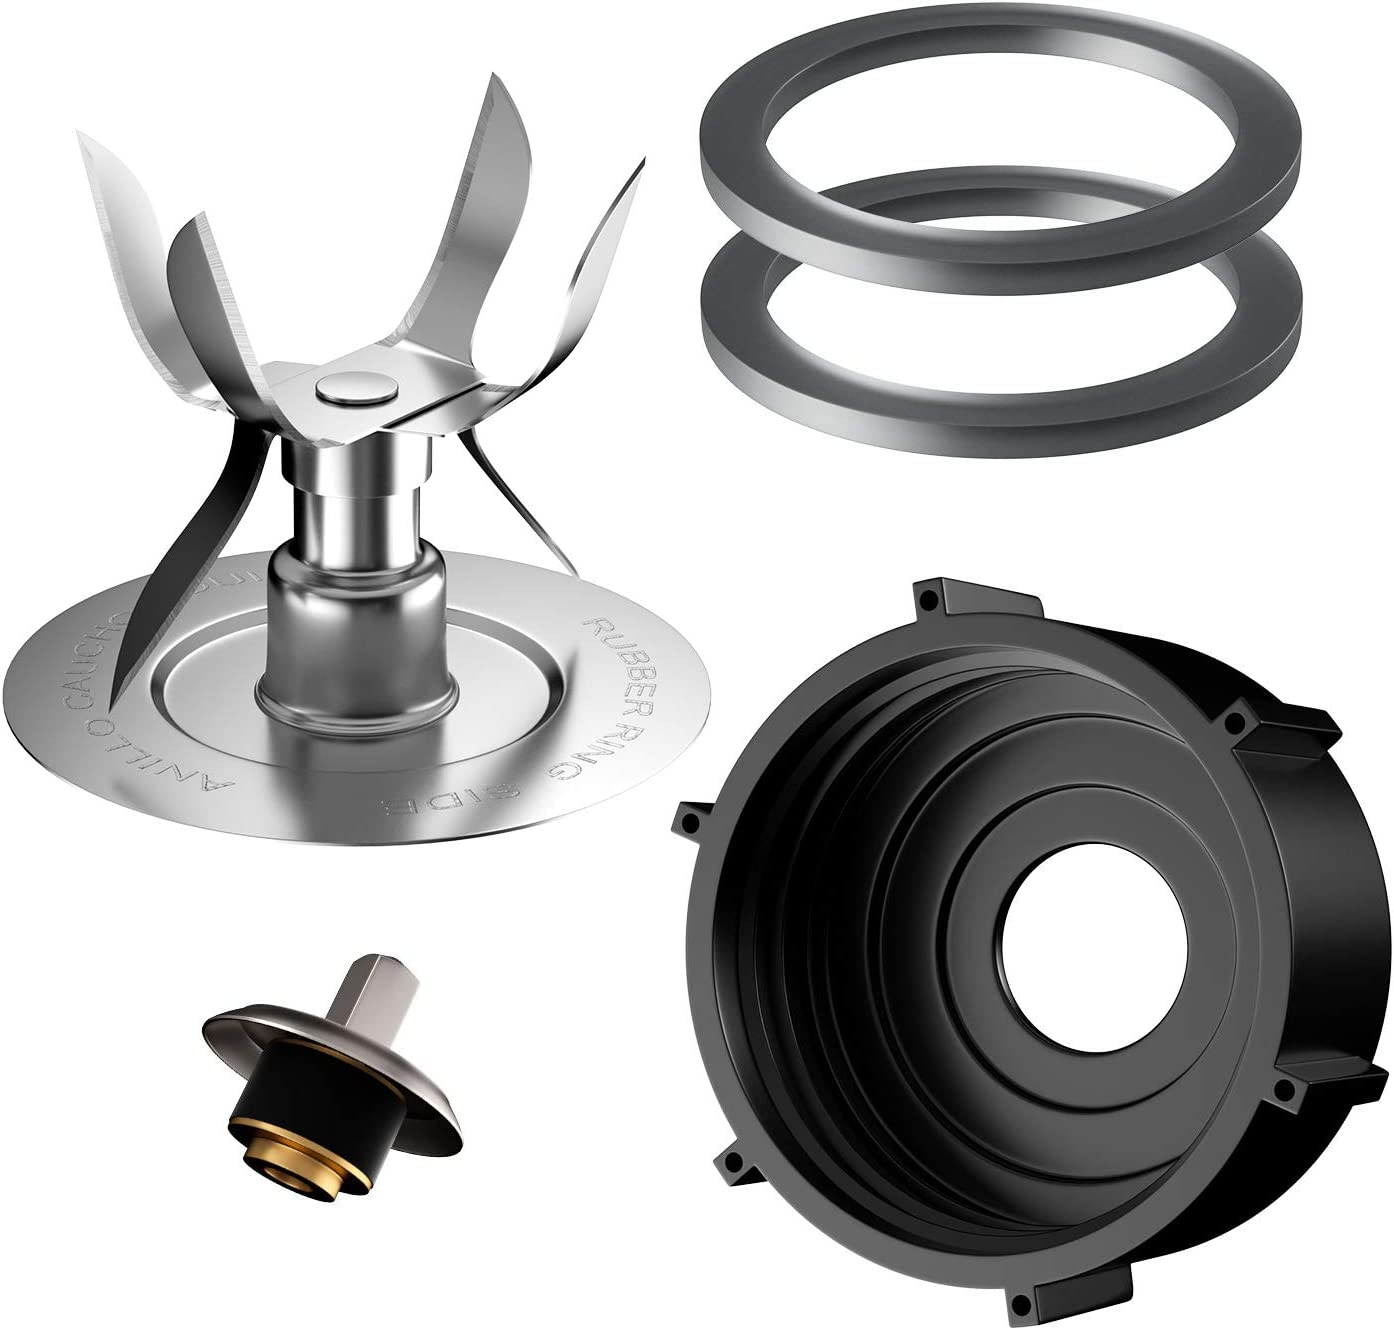 5 Pieces Blender Accessory Ice Blades 4980 Jar Bottom Cap 4902 Sealing O-Ring Gaskets and Drive Coupling Stud Slinger Pin Kit Replacement Parts Compatible with Oster & Osterizer Blender